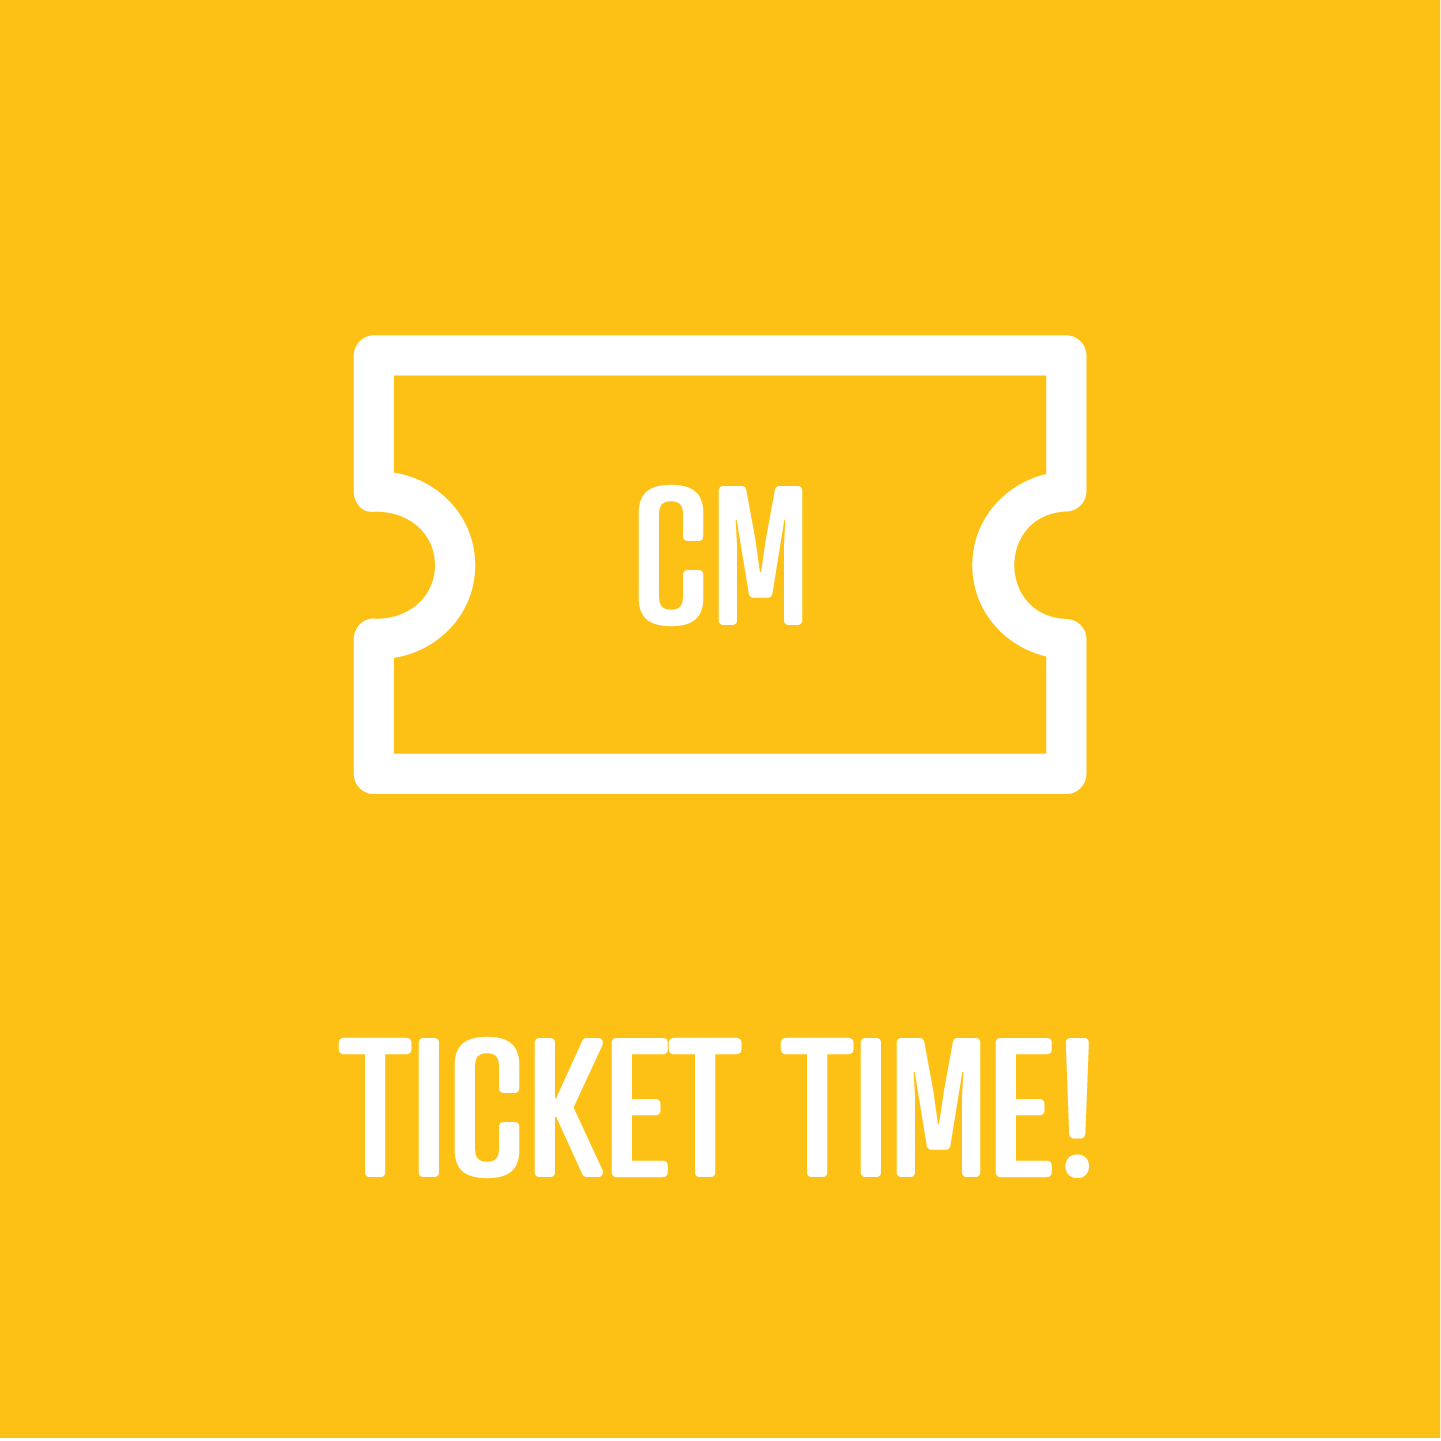 ticket_time_1.png